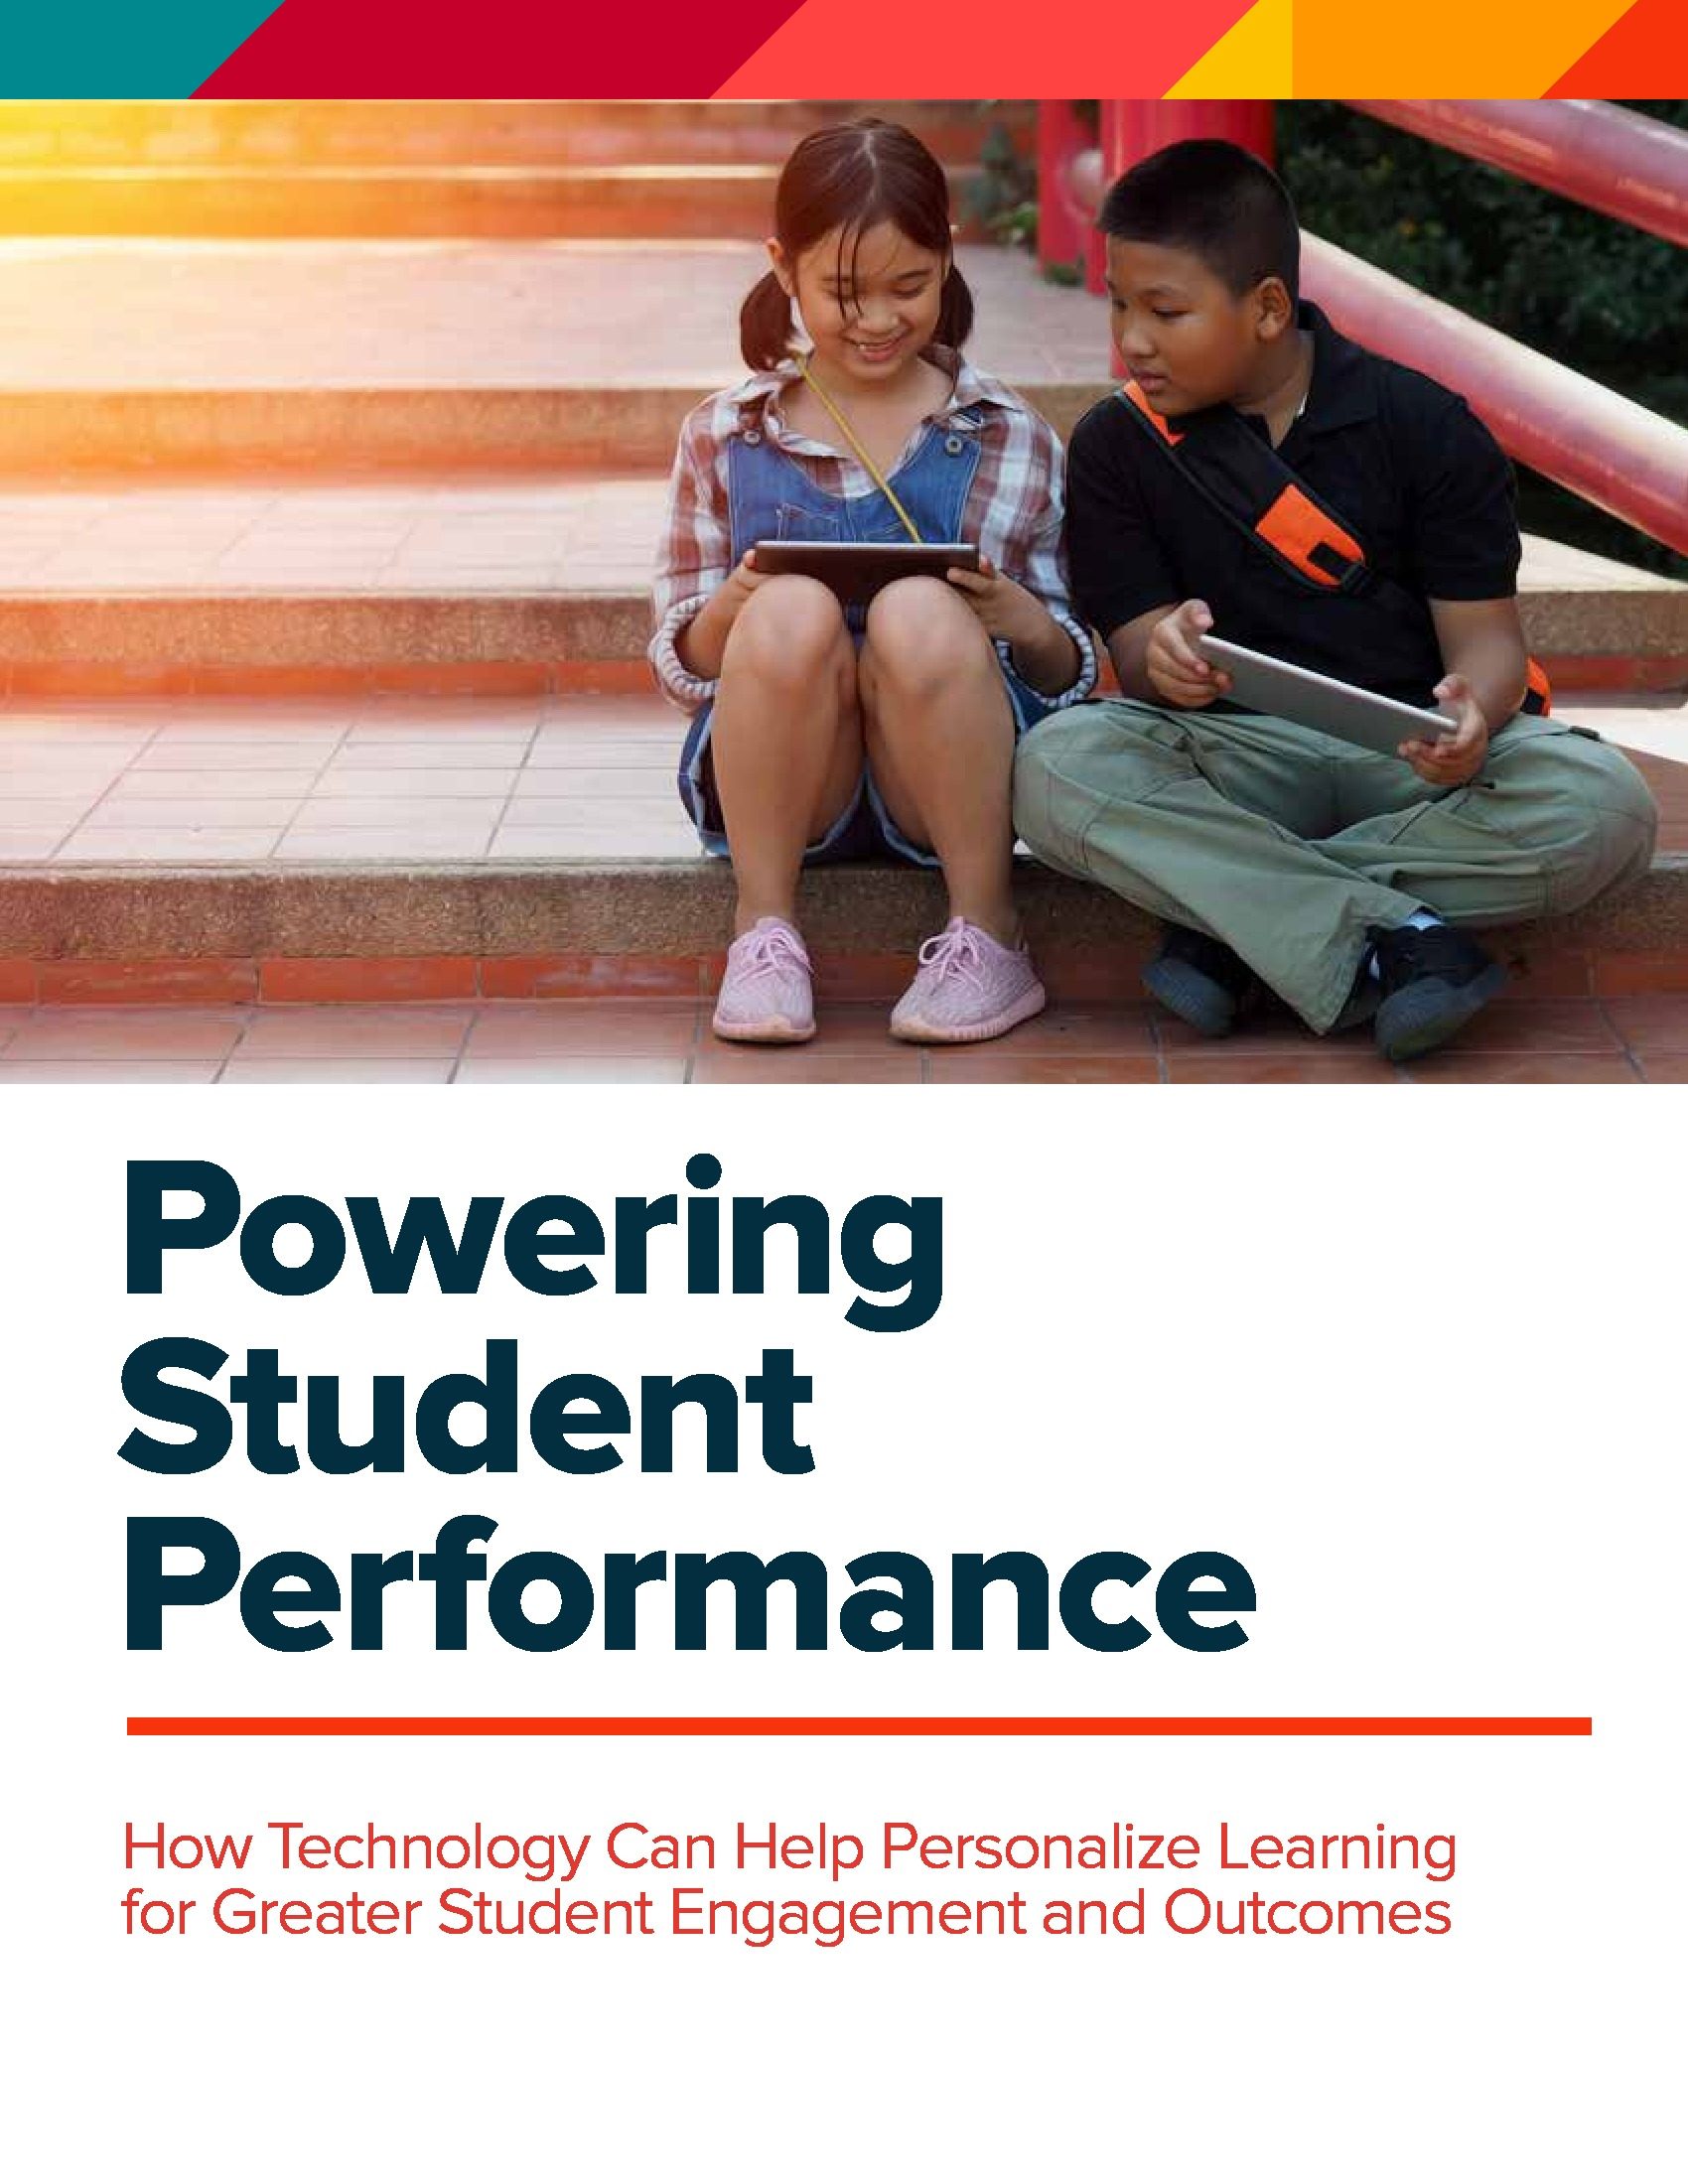 Powering Student Performance